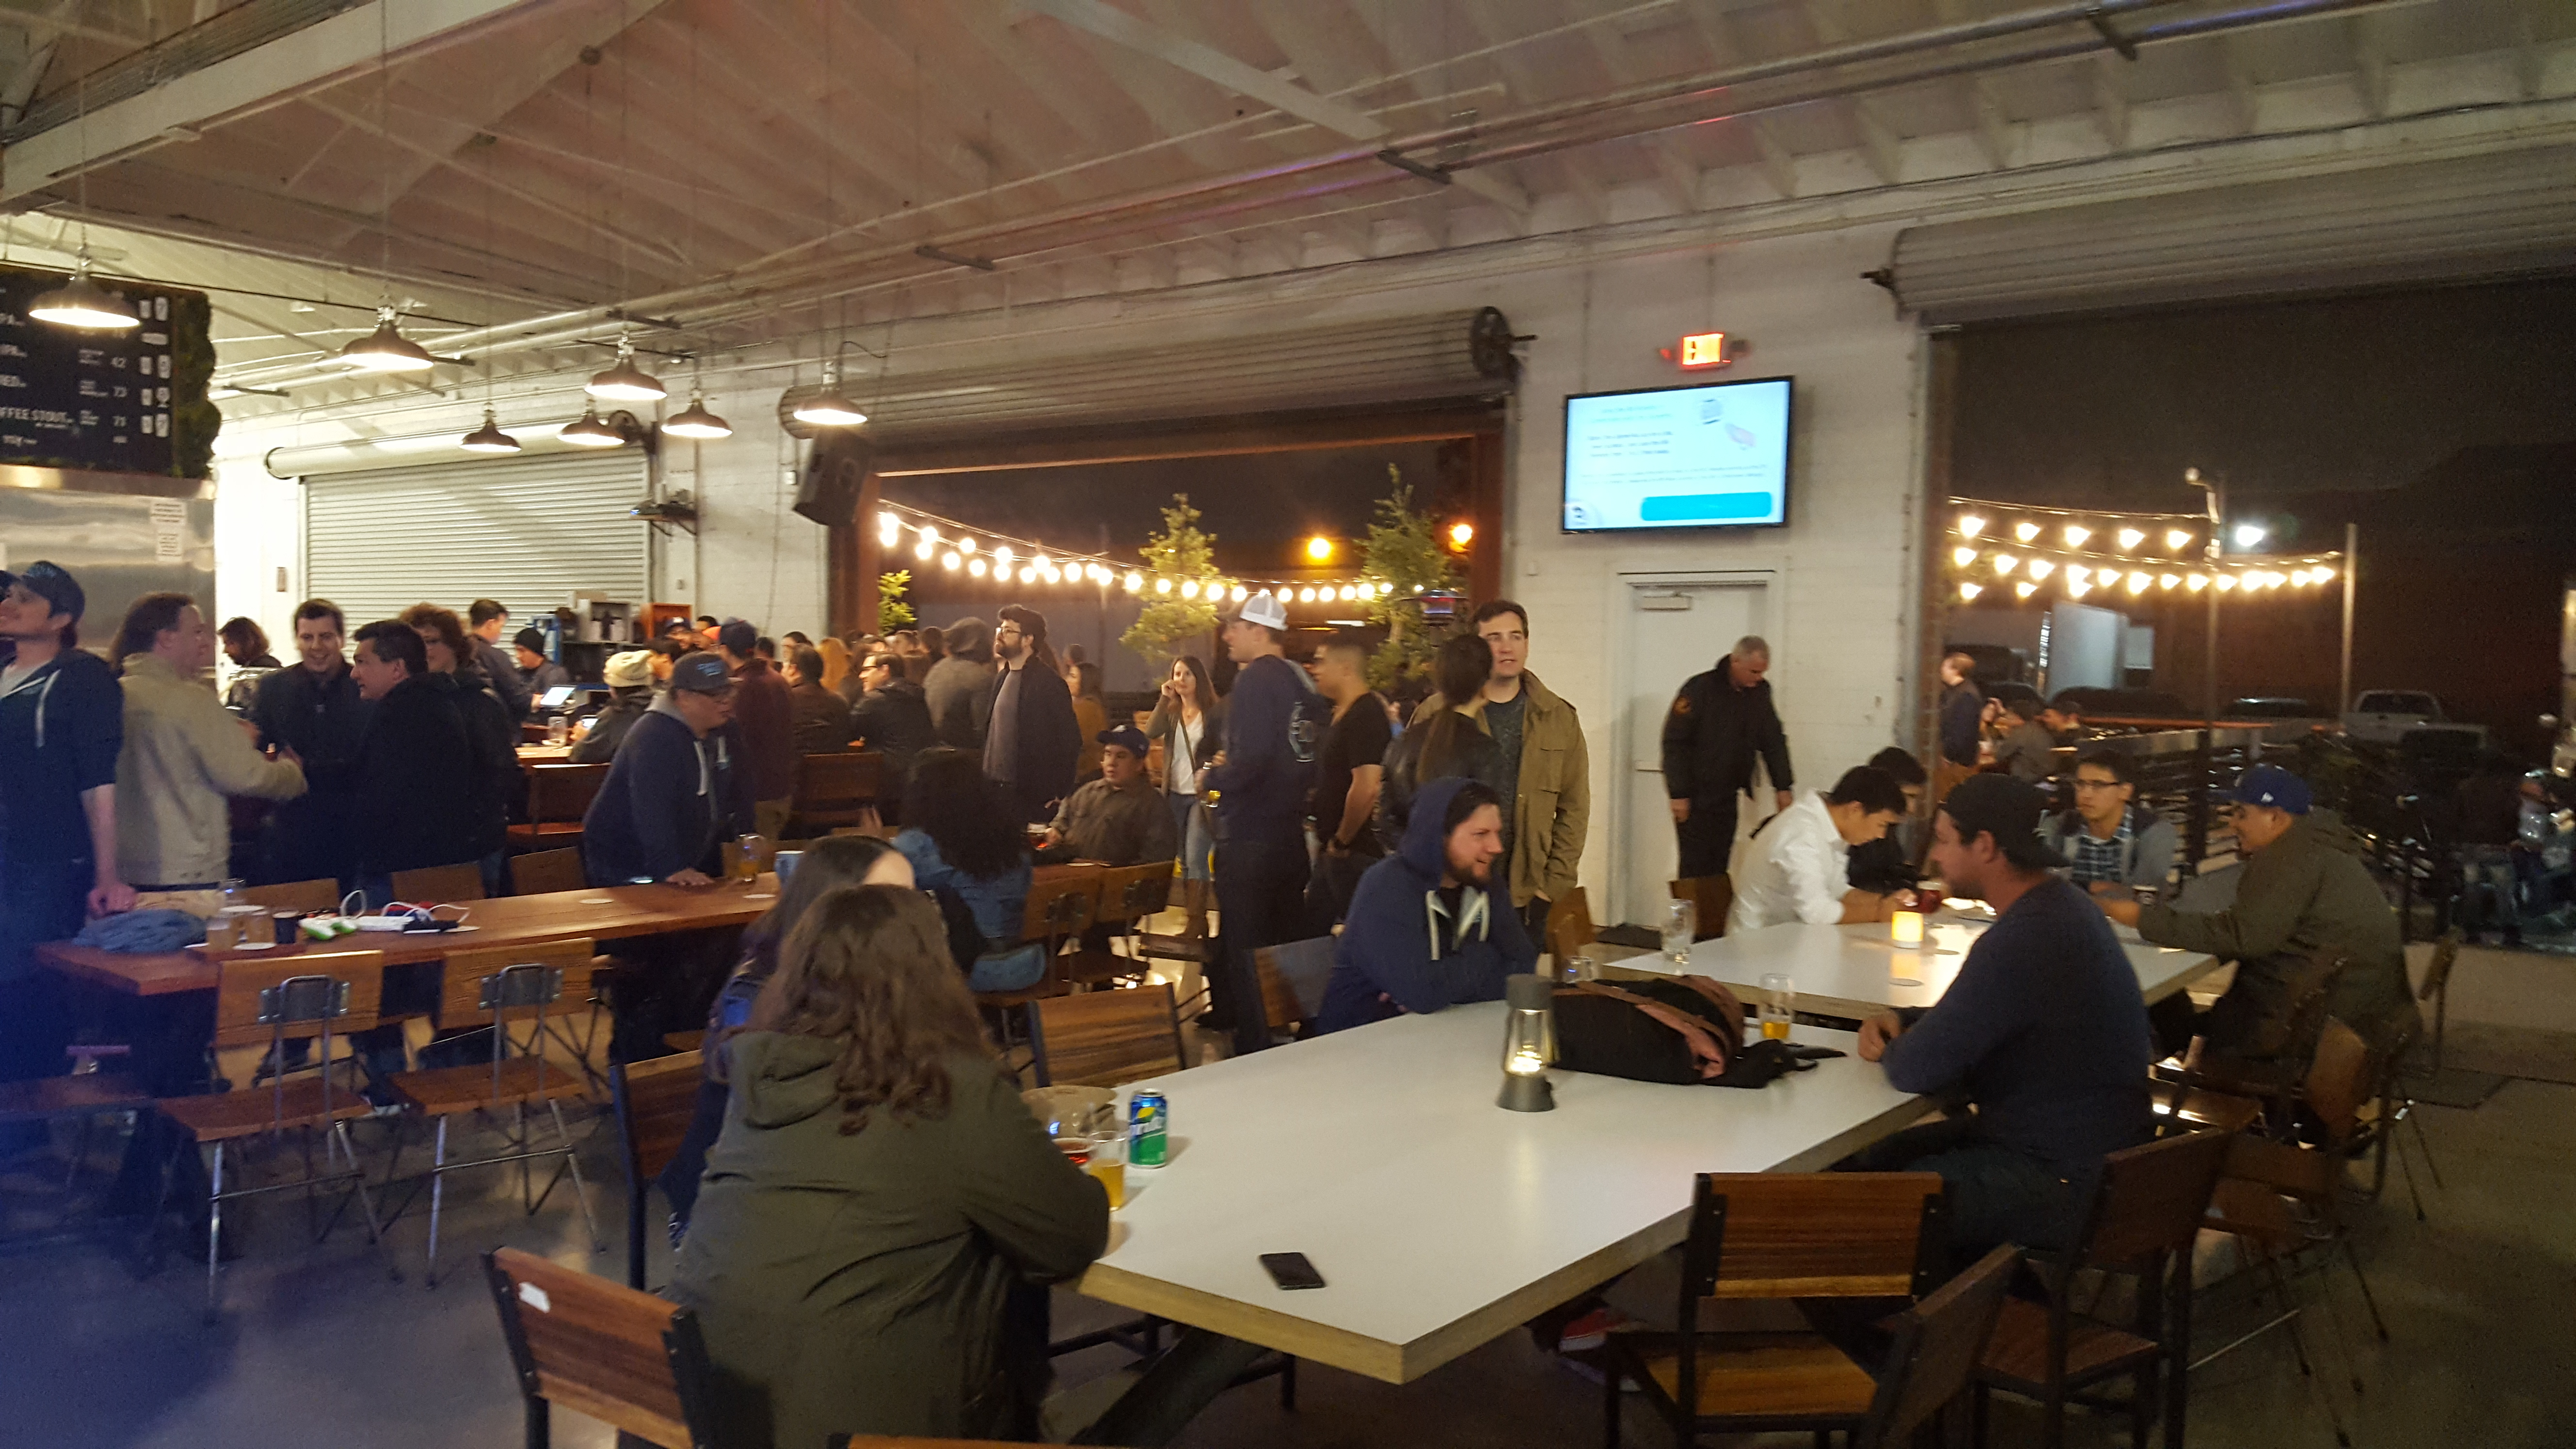 spacecraft brewery - photo #21